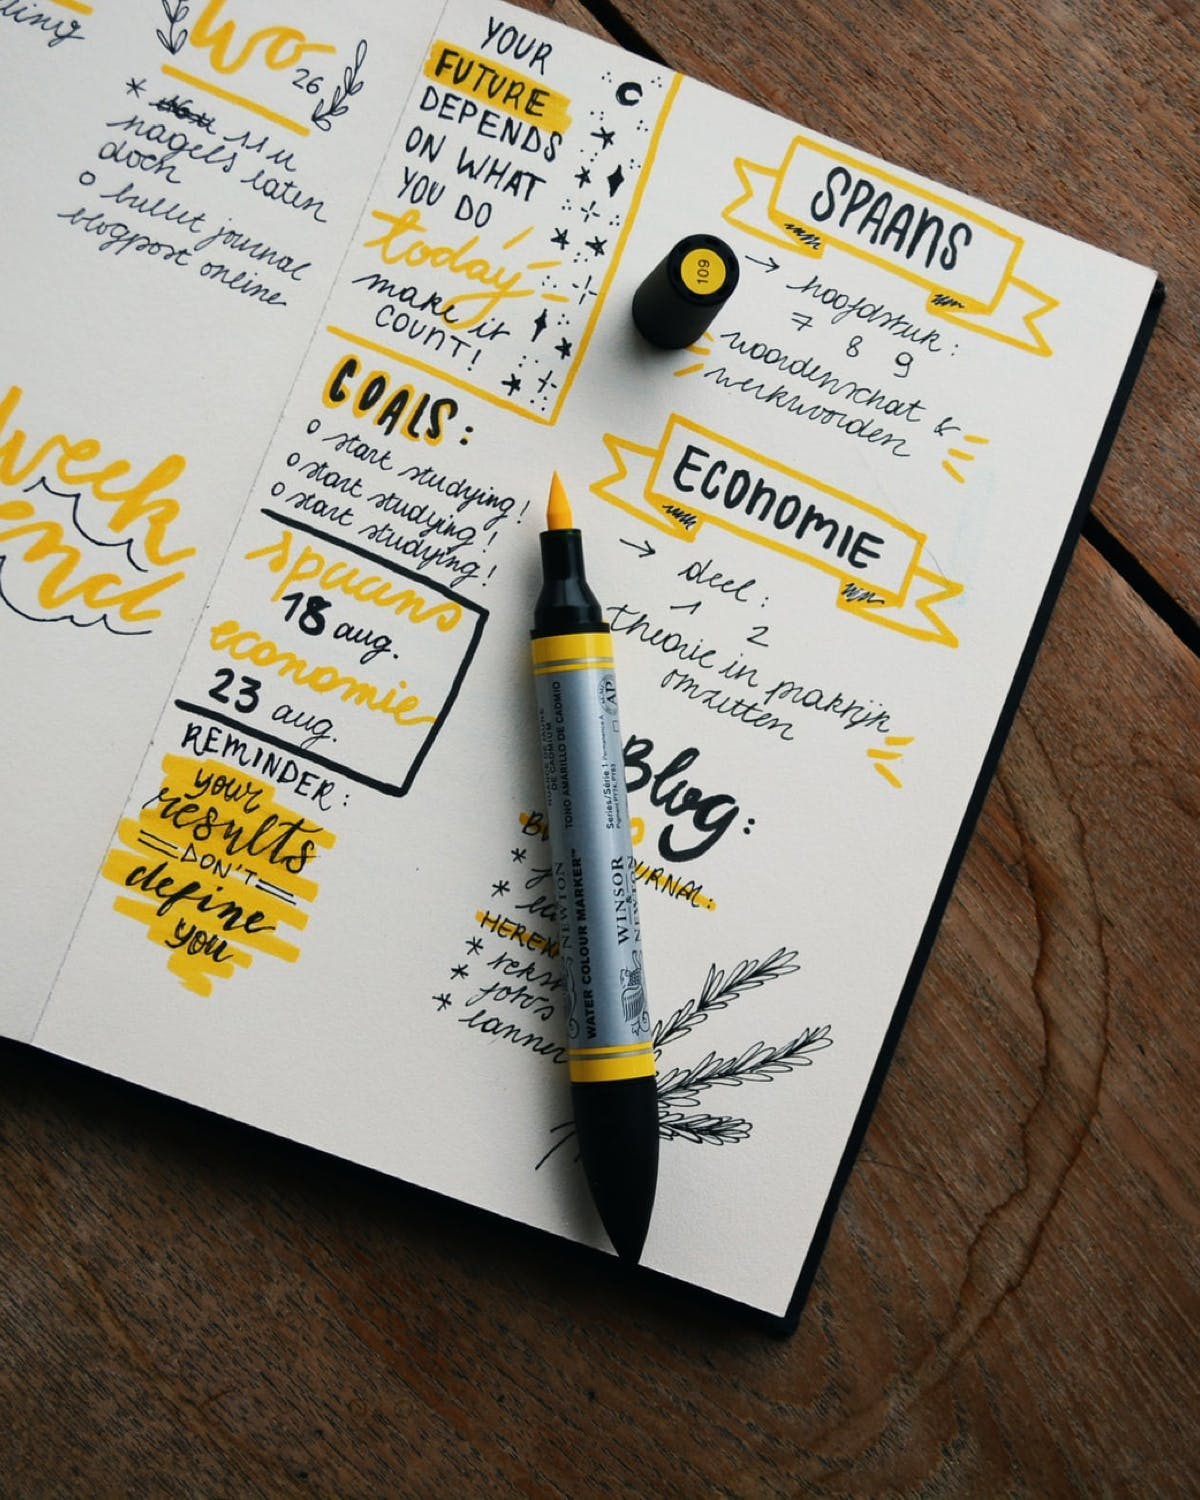 Notes taken in notebook with yellow sharpie